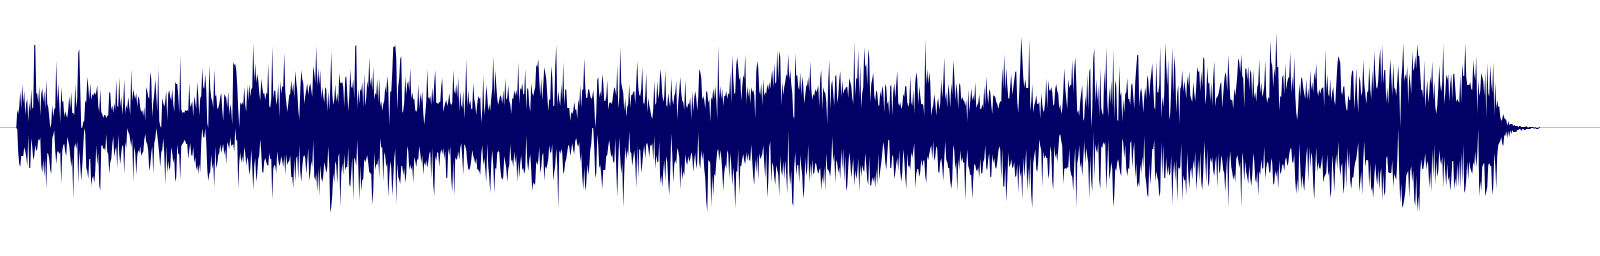 waveform of track #100586